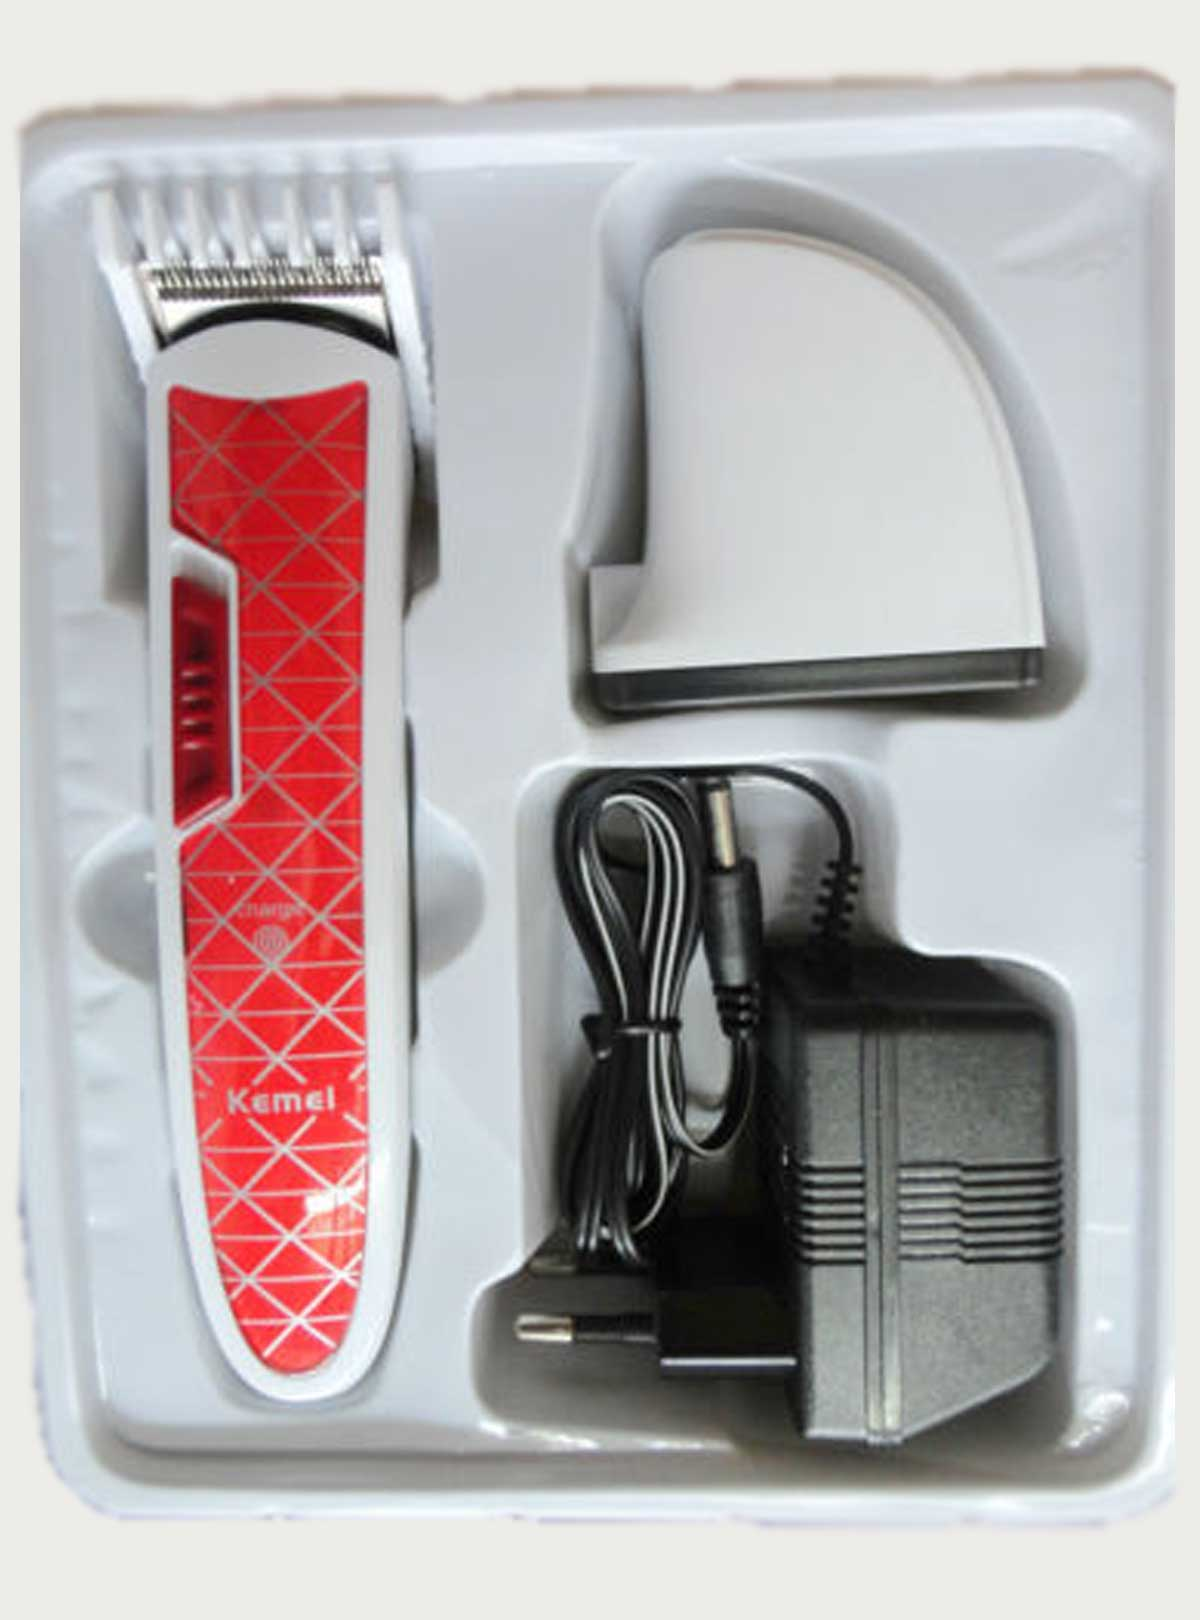 KEMEI Rechargeable Trimmer KM 226